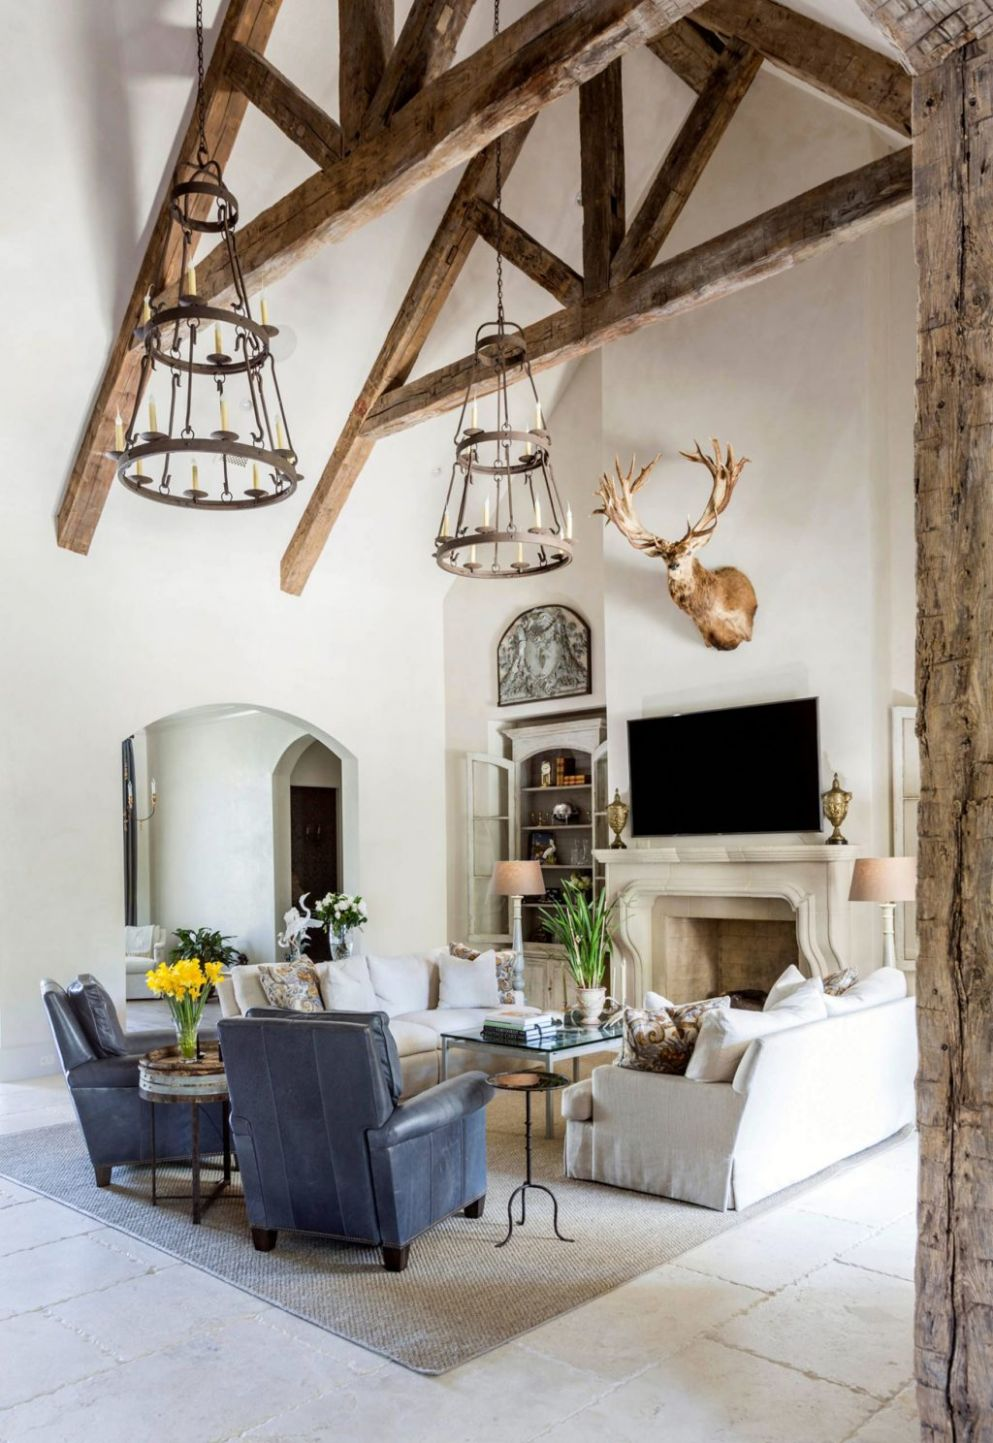 11 Marvelous Rustic Style Home Decorating Ideas for a Natural ..